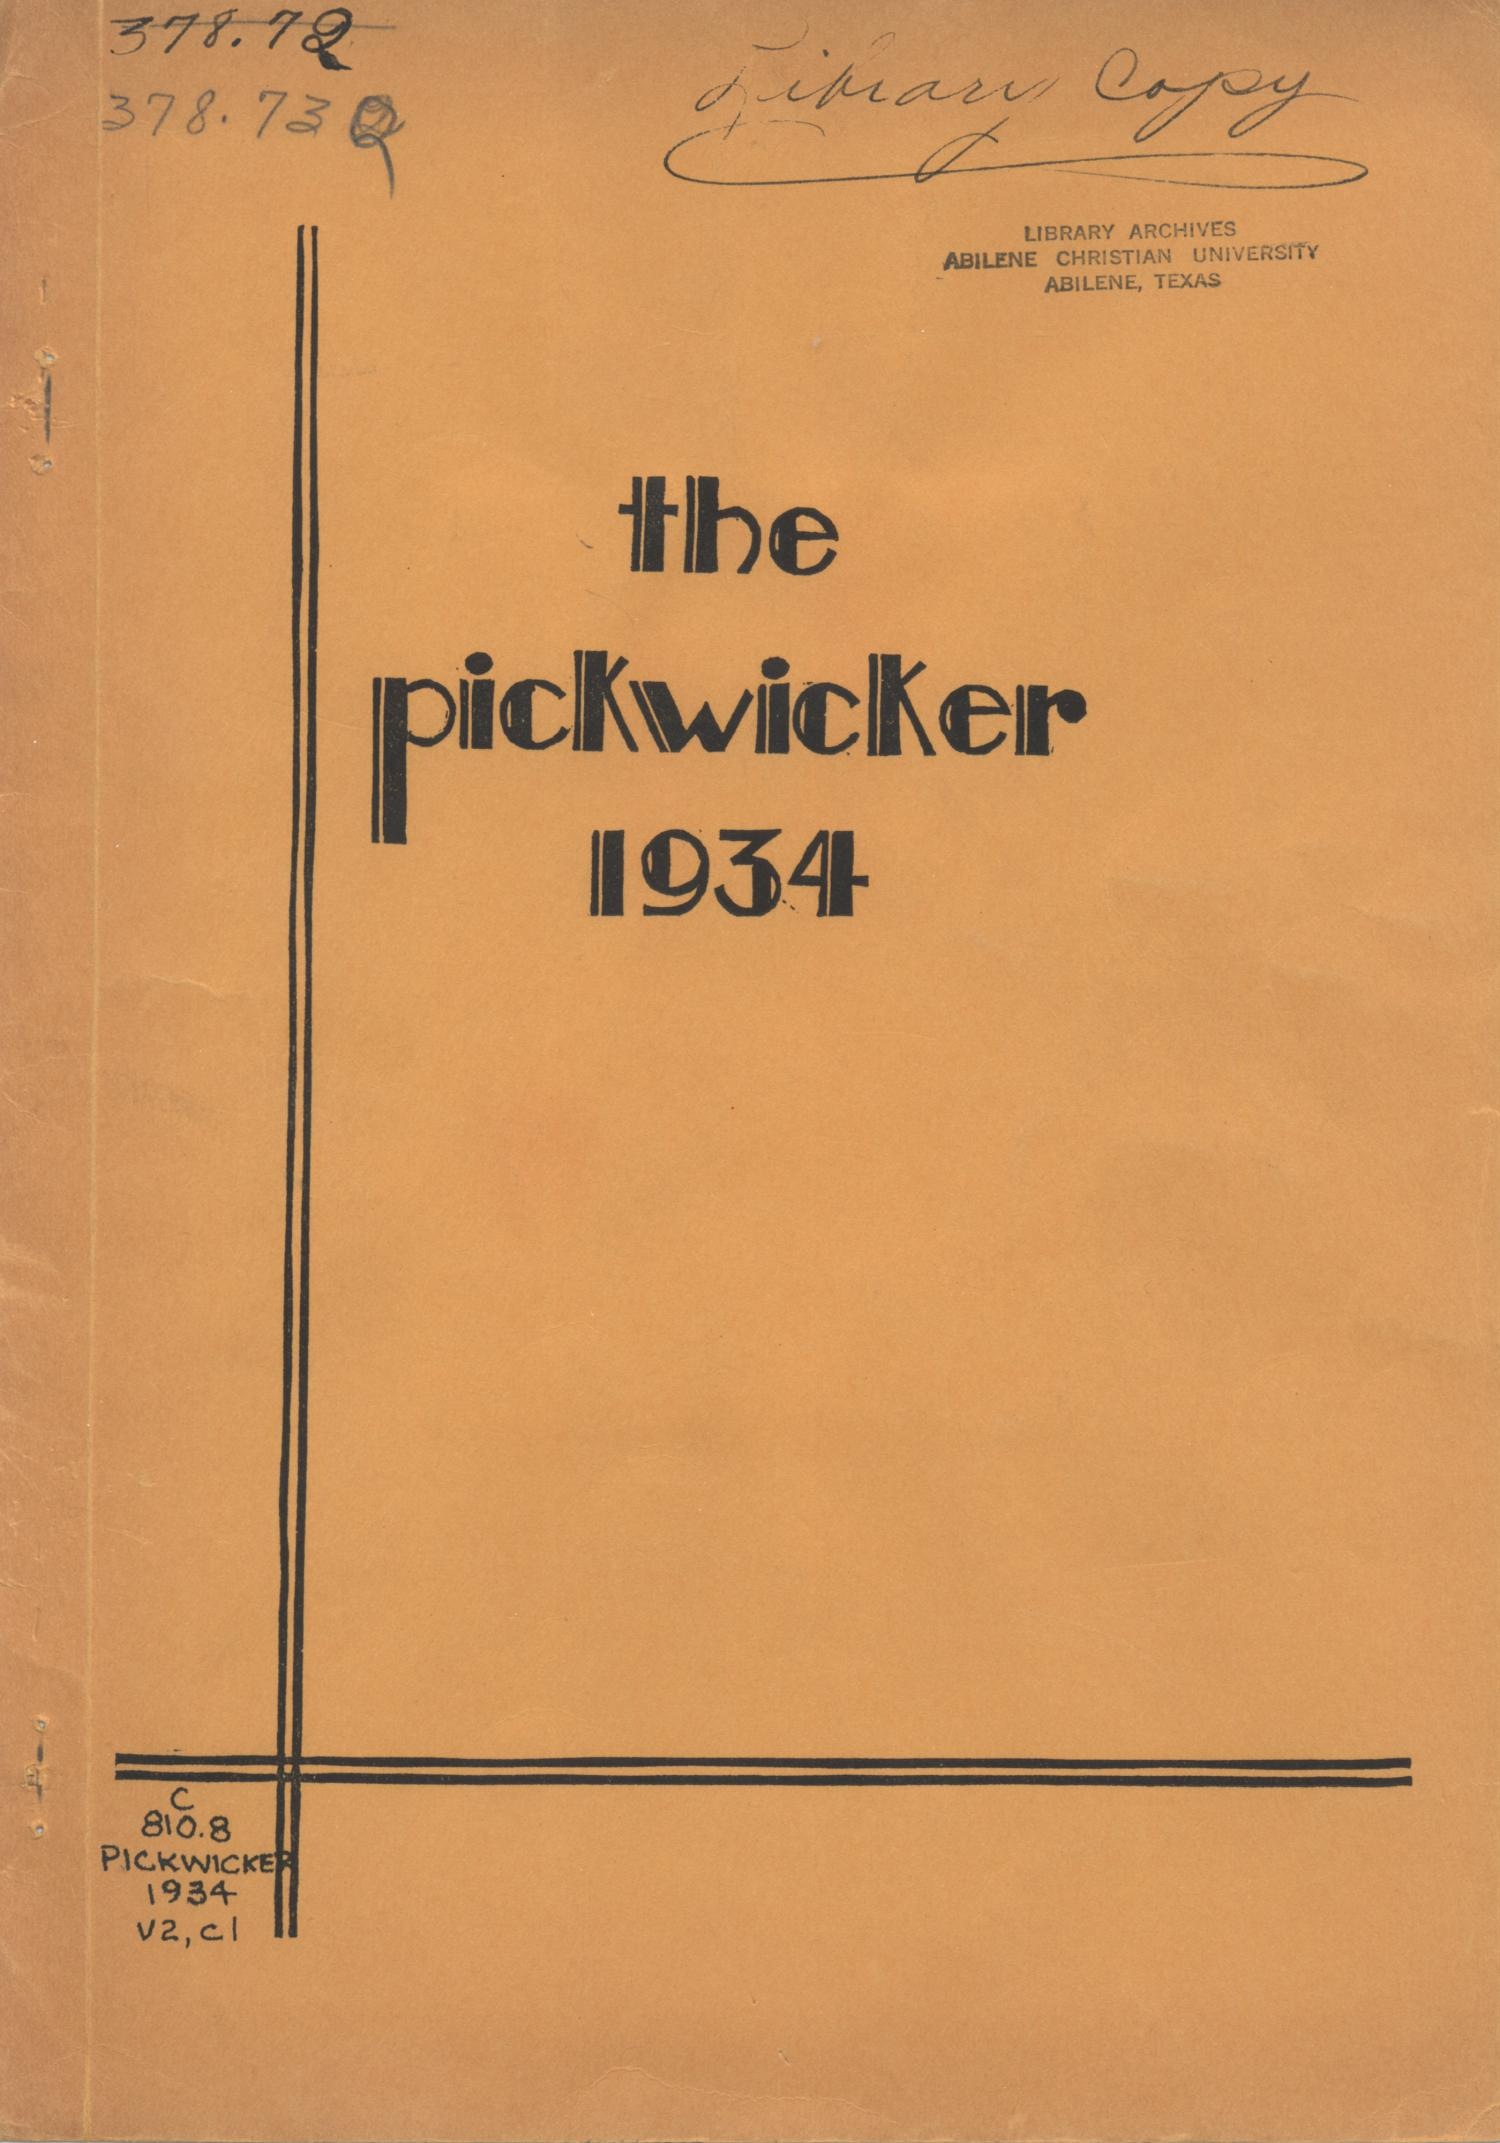 The Pickwicker, Volume 2, Number 1, April 1934                                                                                                      Front Cover